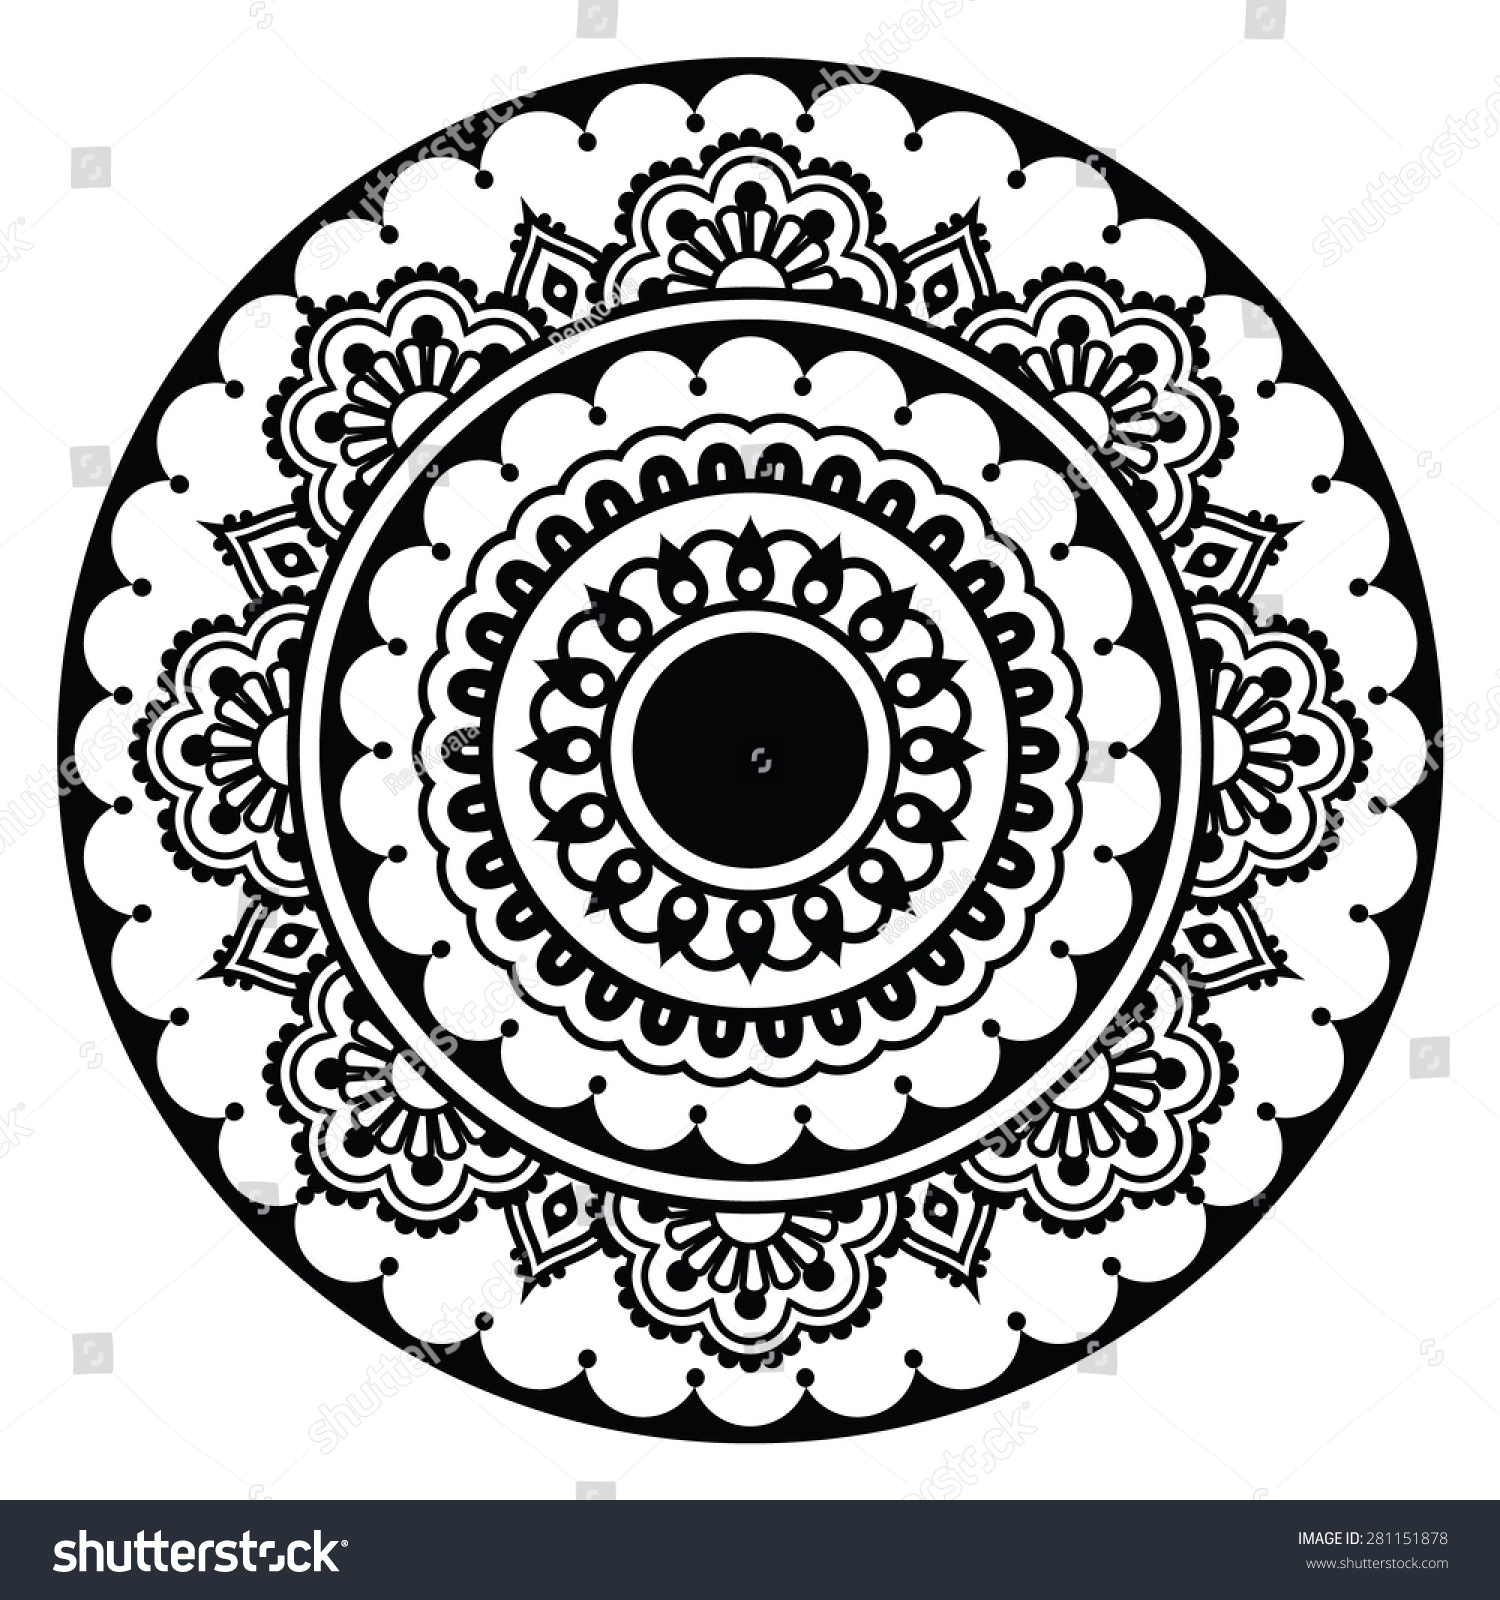 Mehndi Indian Henna Floral Tattoo Round Stock Vector 281151878